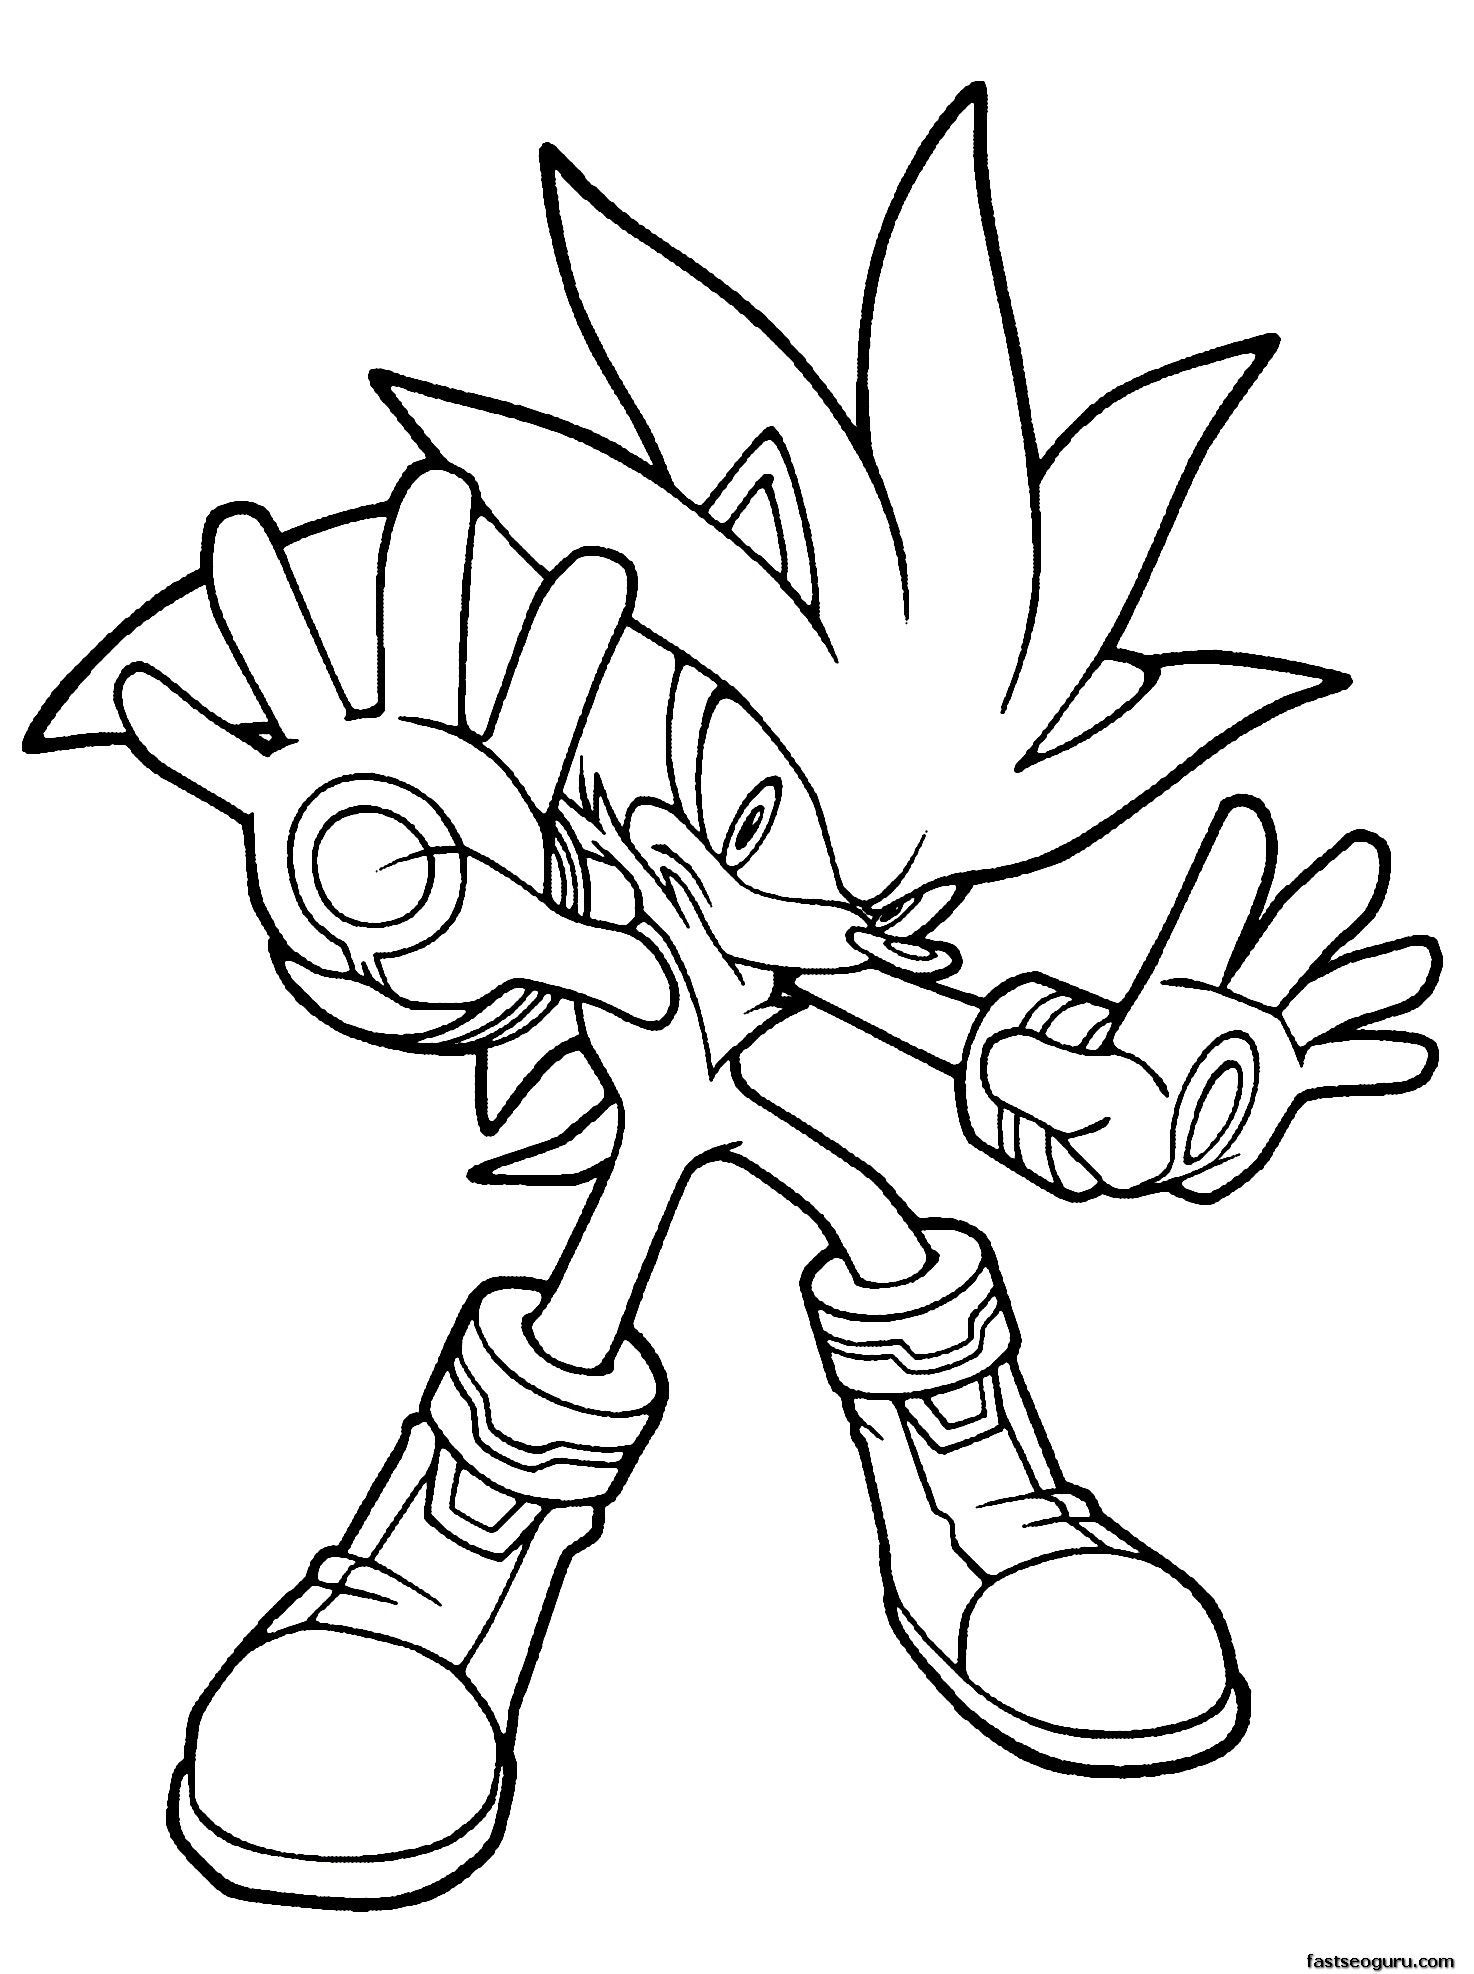 Sonic Coloring Silver Sonic Coloring Silver Sonic Shadow Silver Coloring Pages Sonic Silver Coloring Pages Sonic The Hedgehog Silver Coloring Sonic The Hed